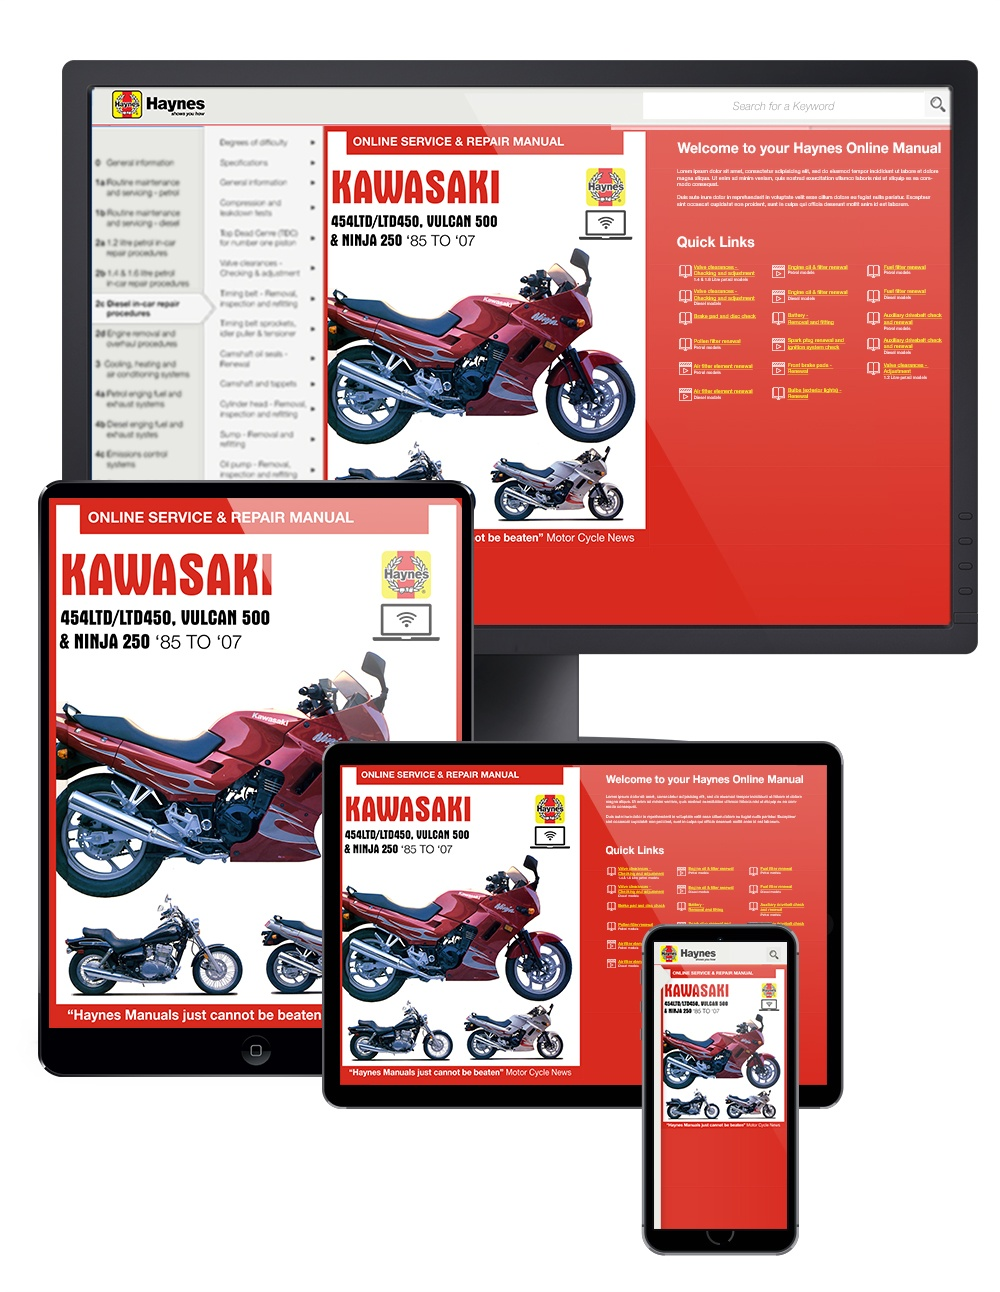 Kawasaki EN450 and 500 Twins Haynes Online Manual covering EN450 (454LTD/LTD450) for 1985 to 1990, EN500 or Vulcan 500 for 1990 to 2007, and EX250 ...